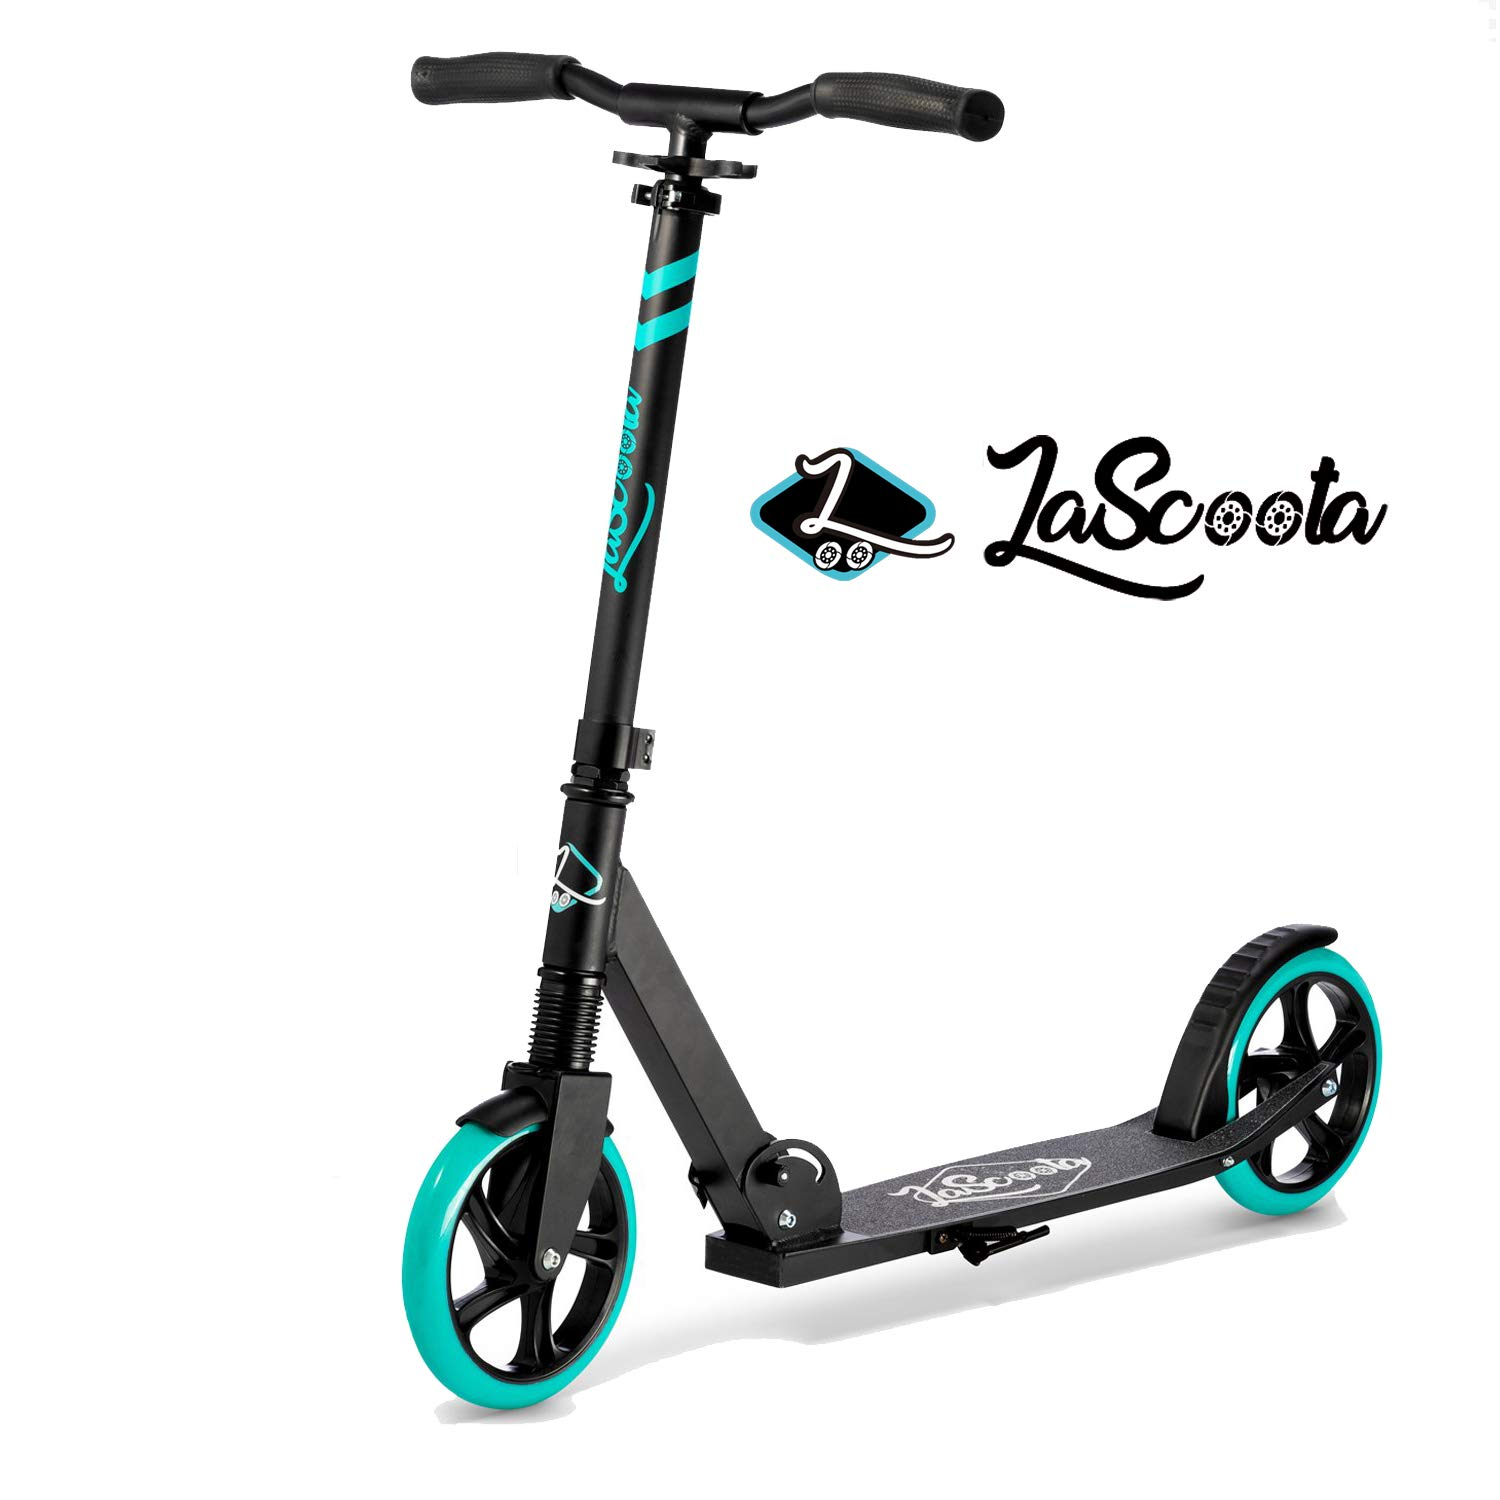 Top 10 Best Kick Scooter For Commuting - Buyer's Guide 8